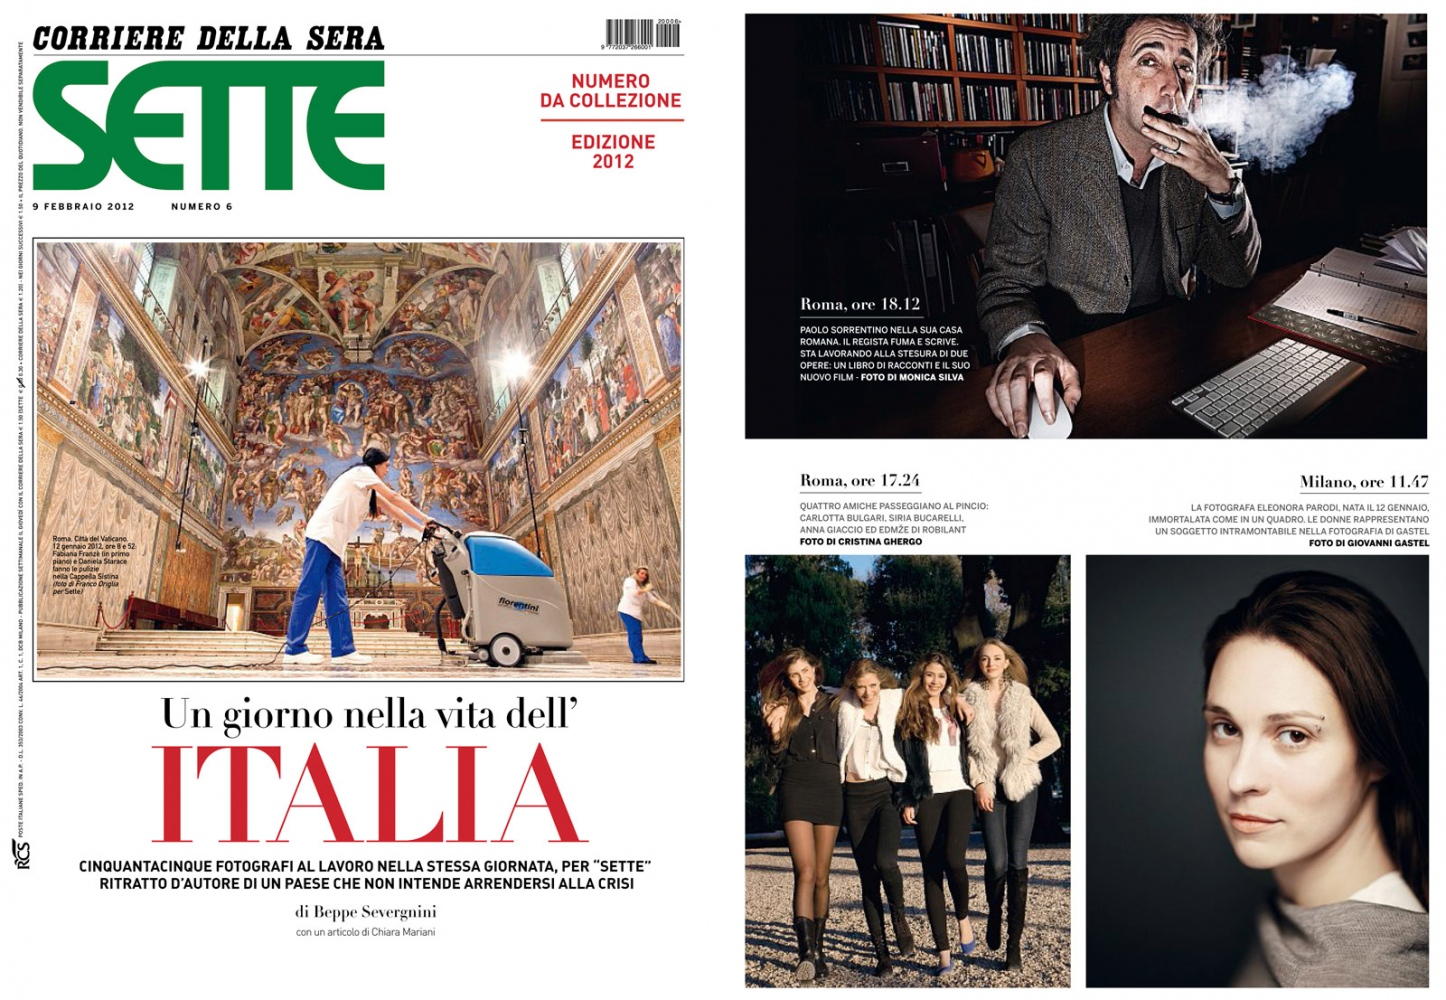 SETTE (Corriere della Sera)  A day in the life of the italians special edition PAOLO SORRENTINO Italy 2012